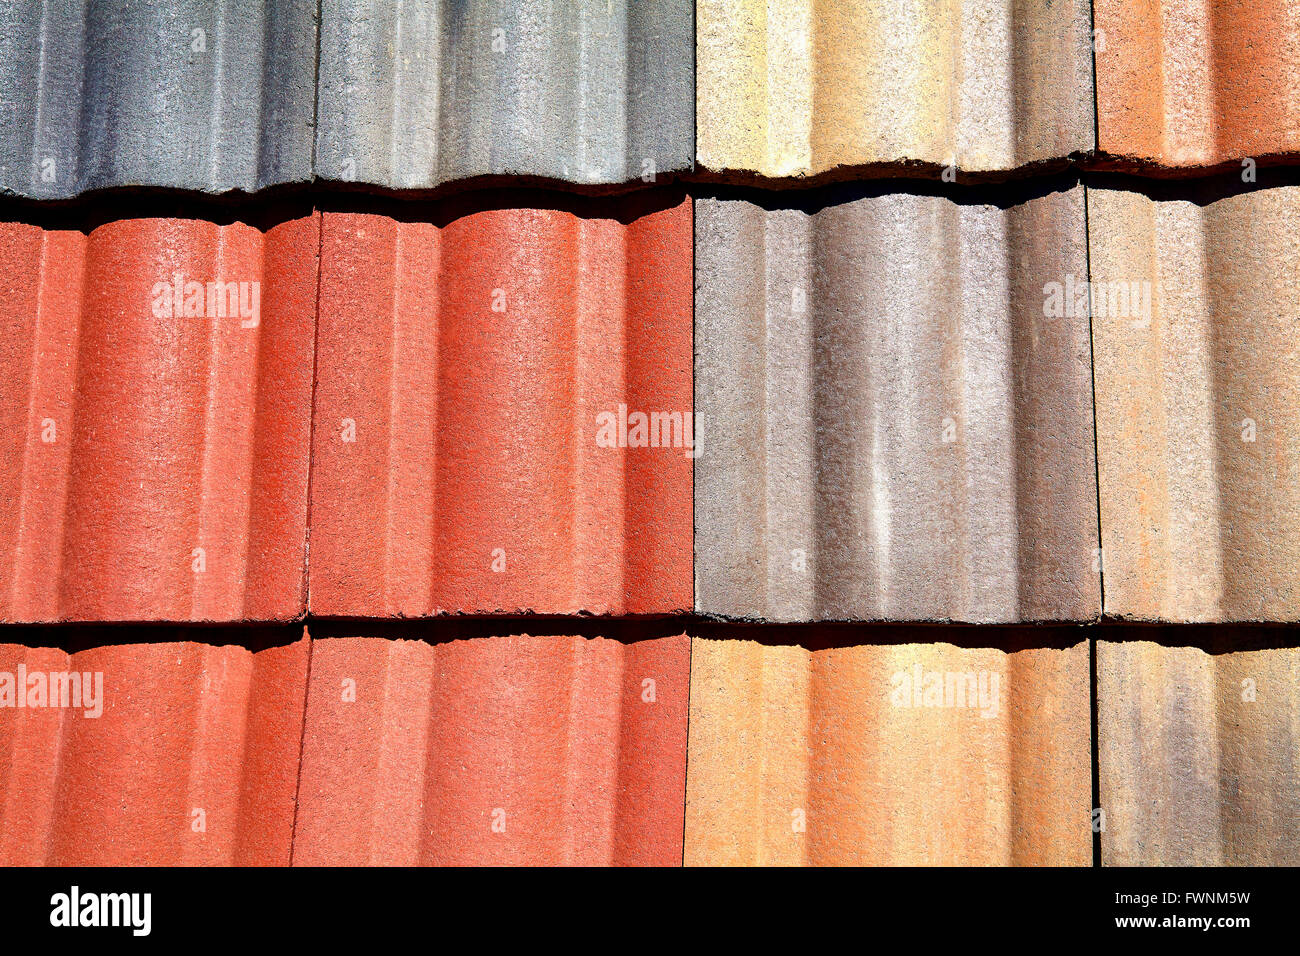 Homebuilding Stock Photos & Homebuilding Stock Images - Alamy